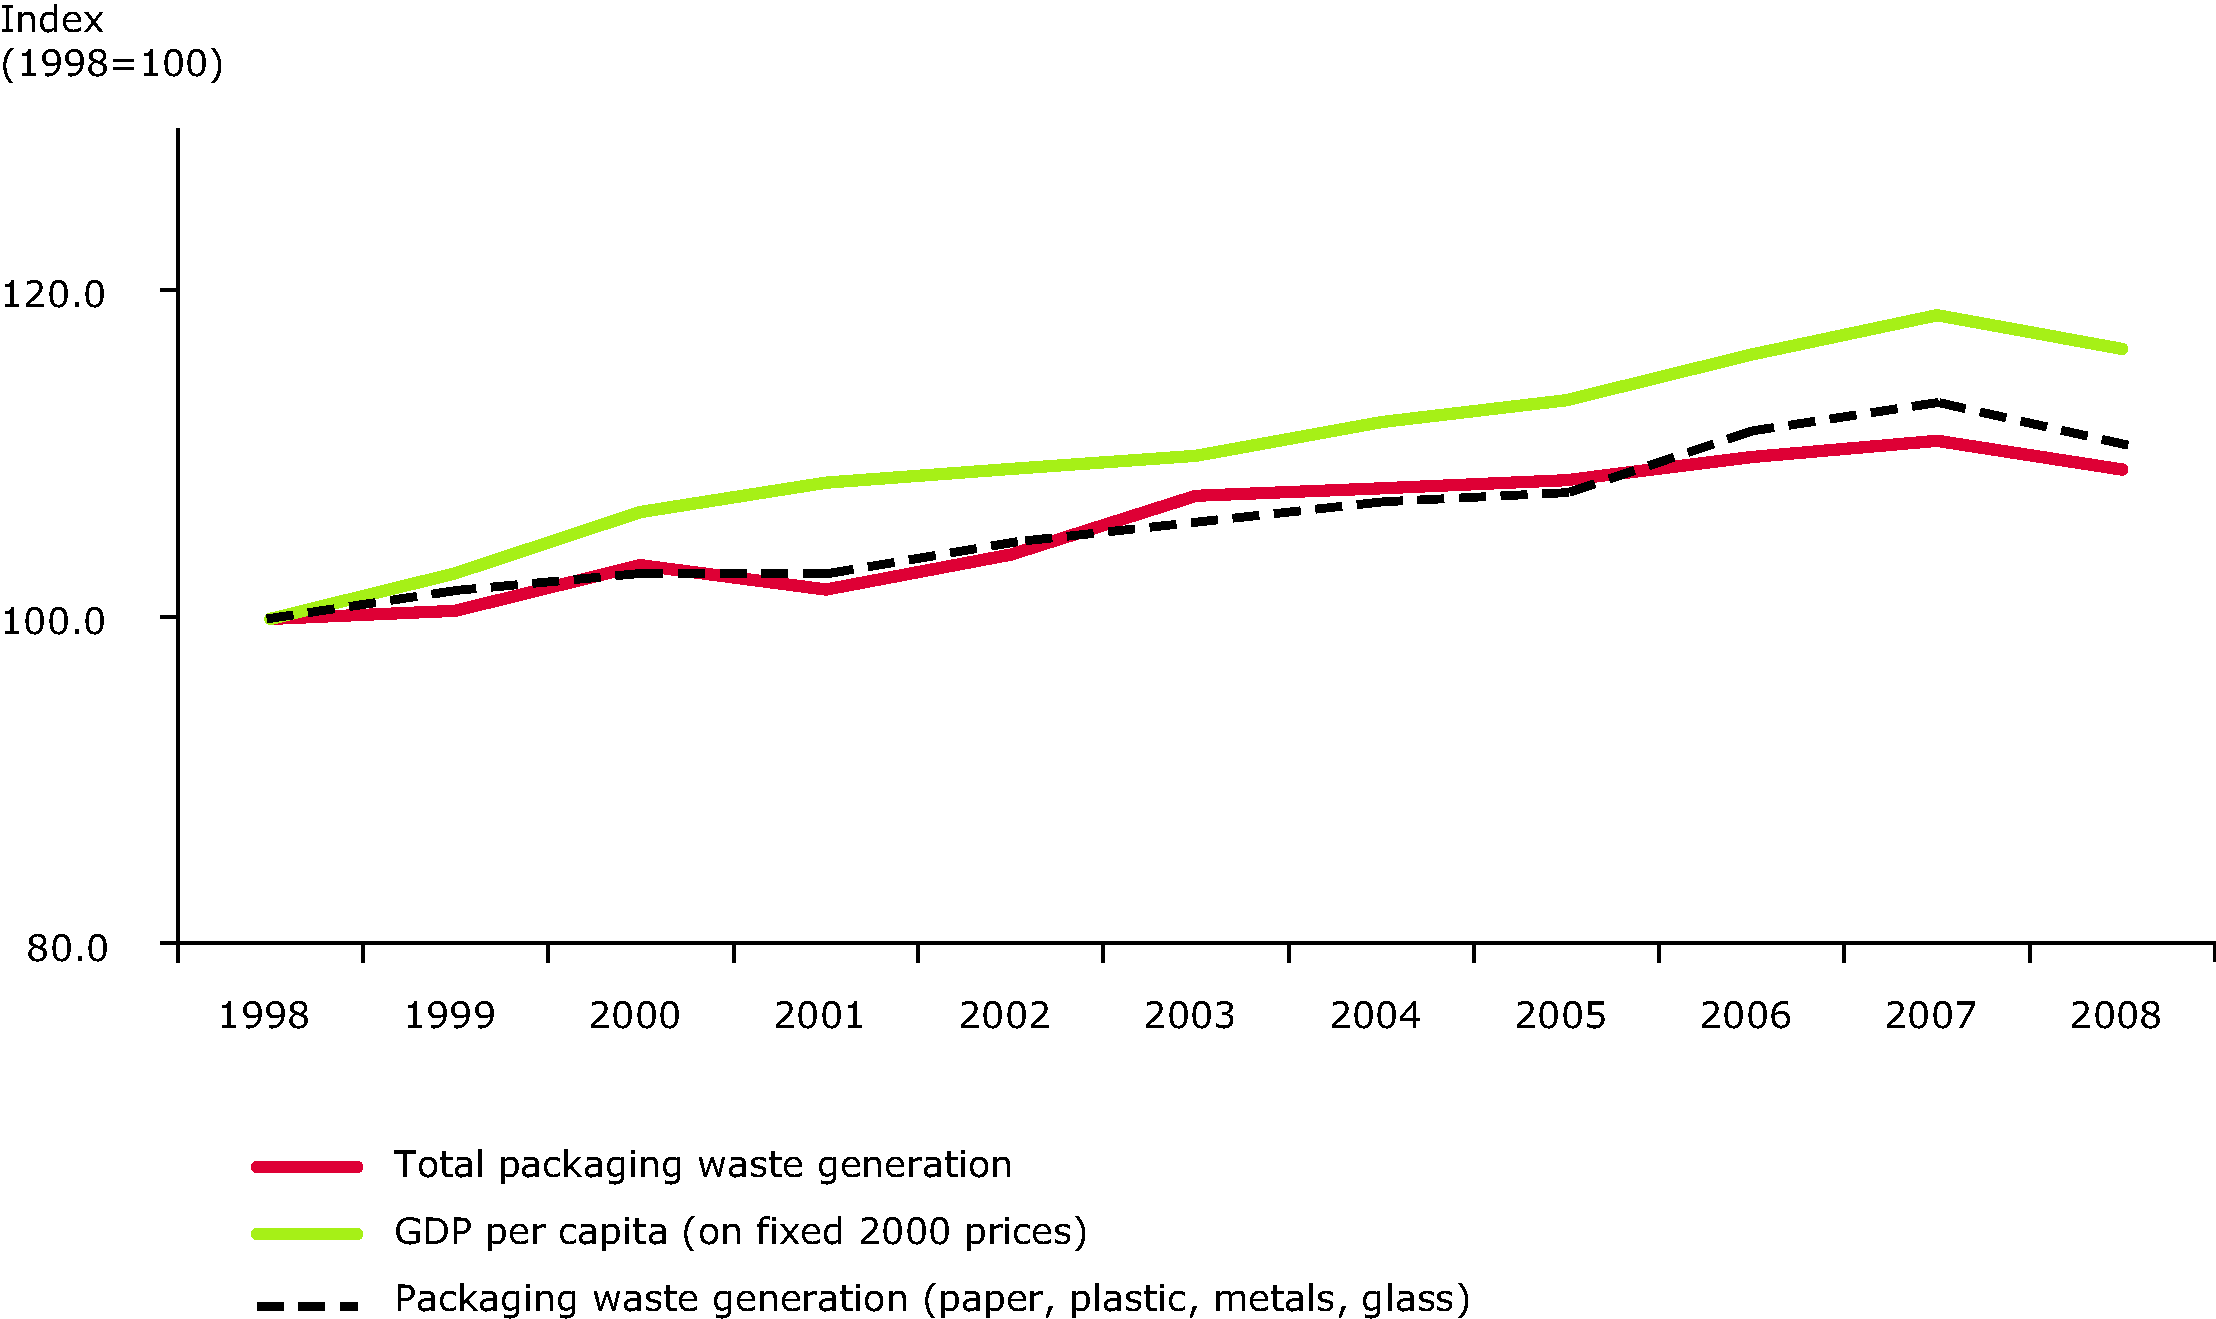 Generation of packaging waste and GDP in the EU-15